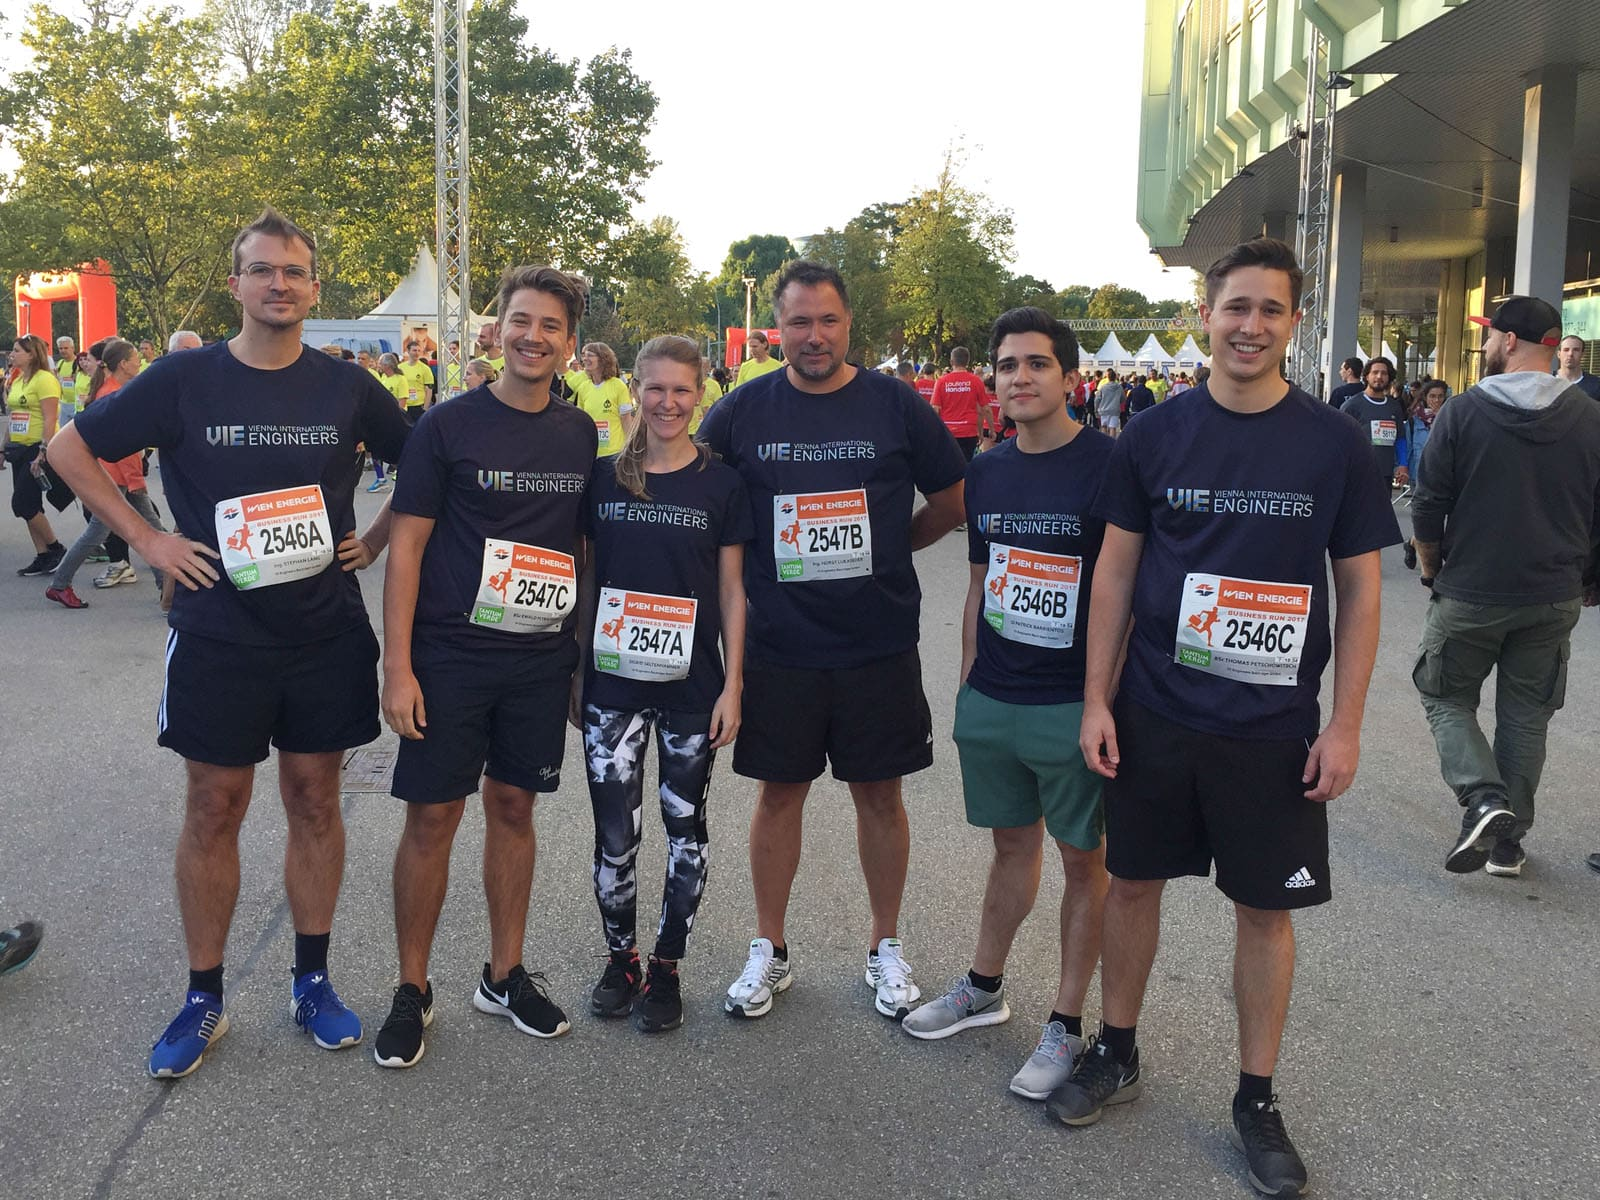 VI Engineers Wien Business Run Team